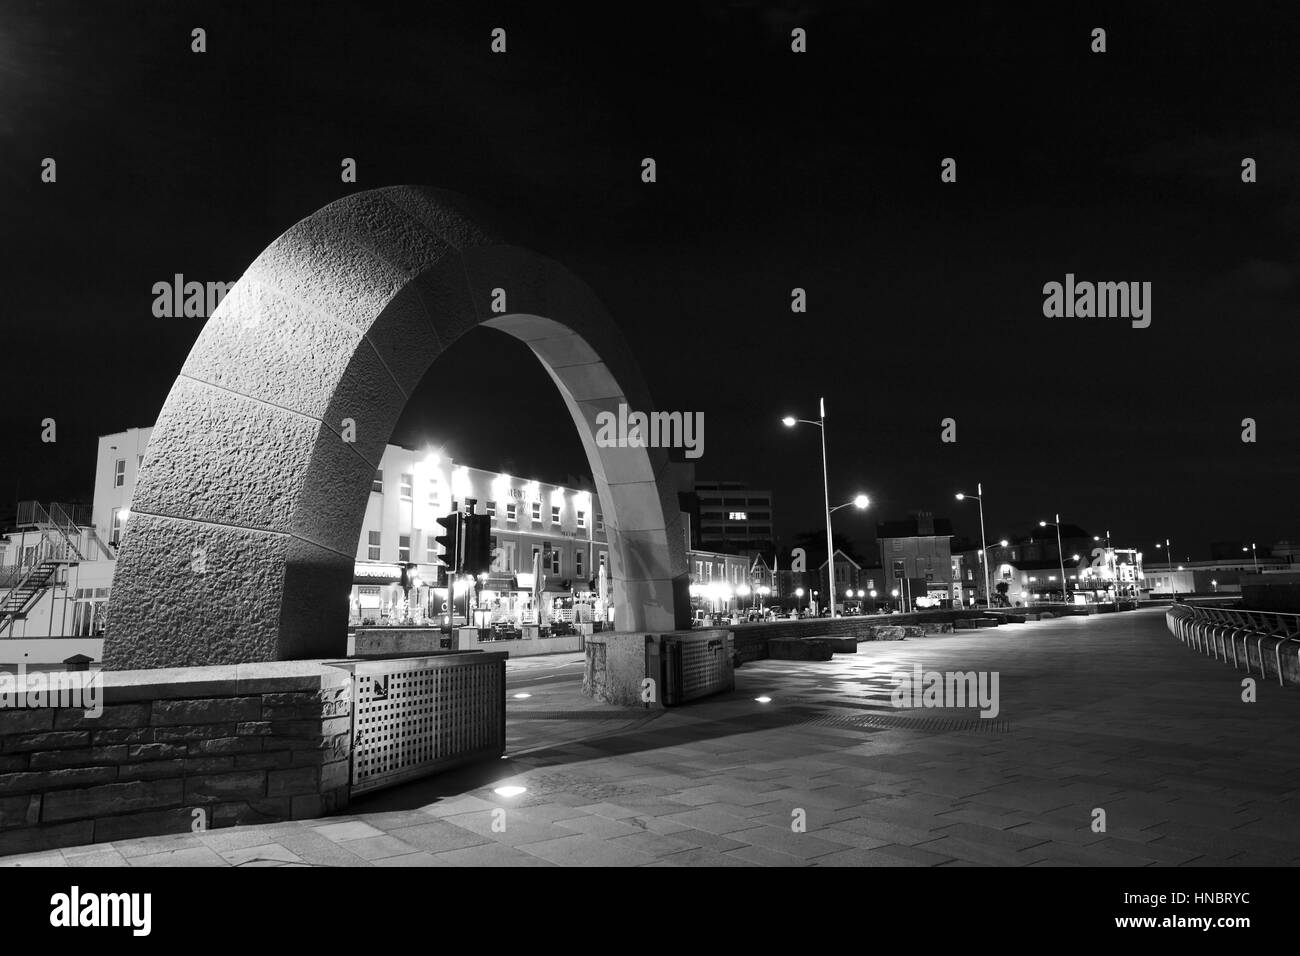 Stone Arch Sculpture at night, Weston Super Mare, Bristol Channel, Somerset County, England, UK - Stock Image